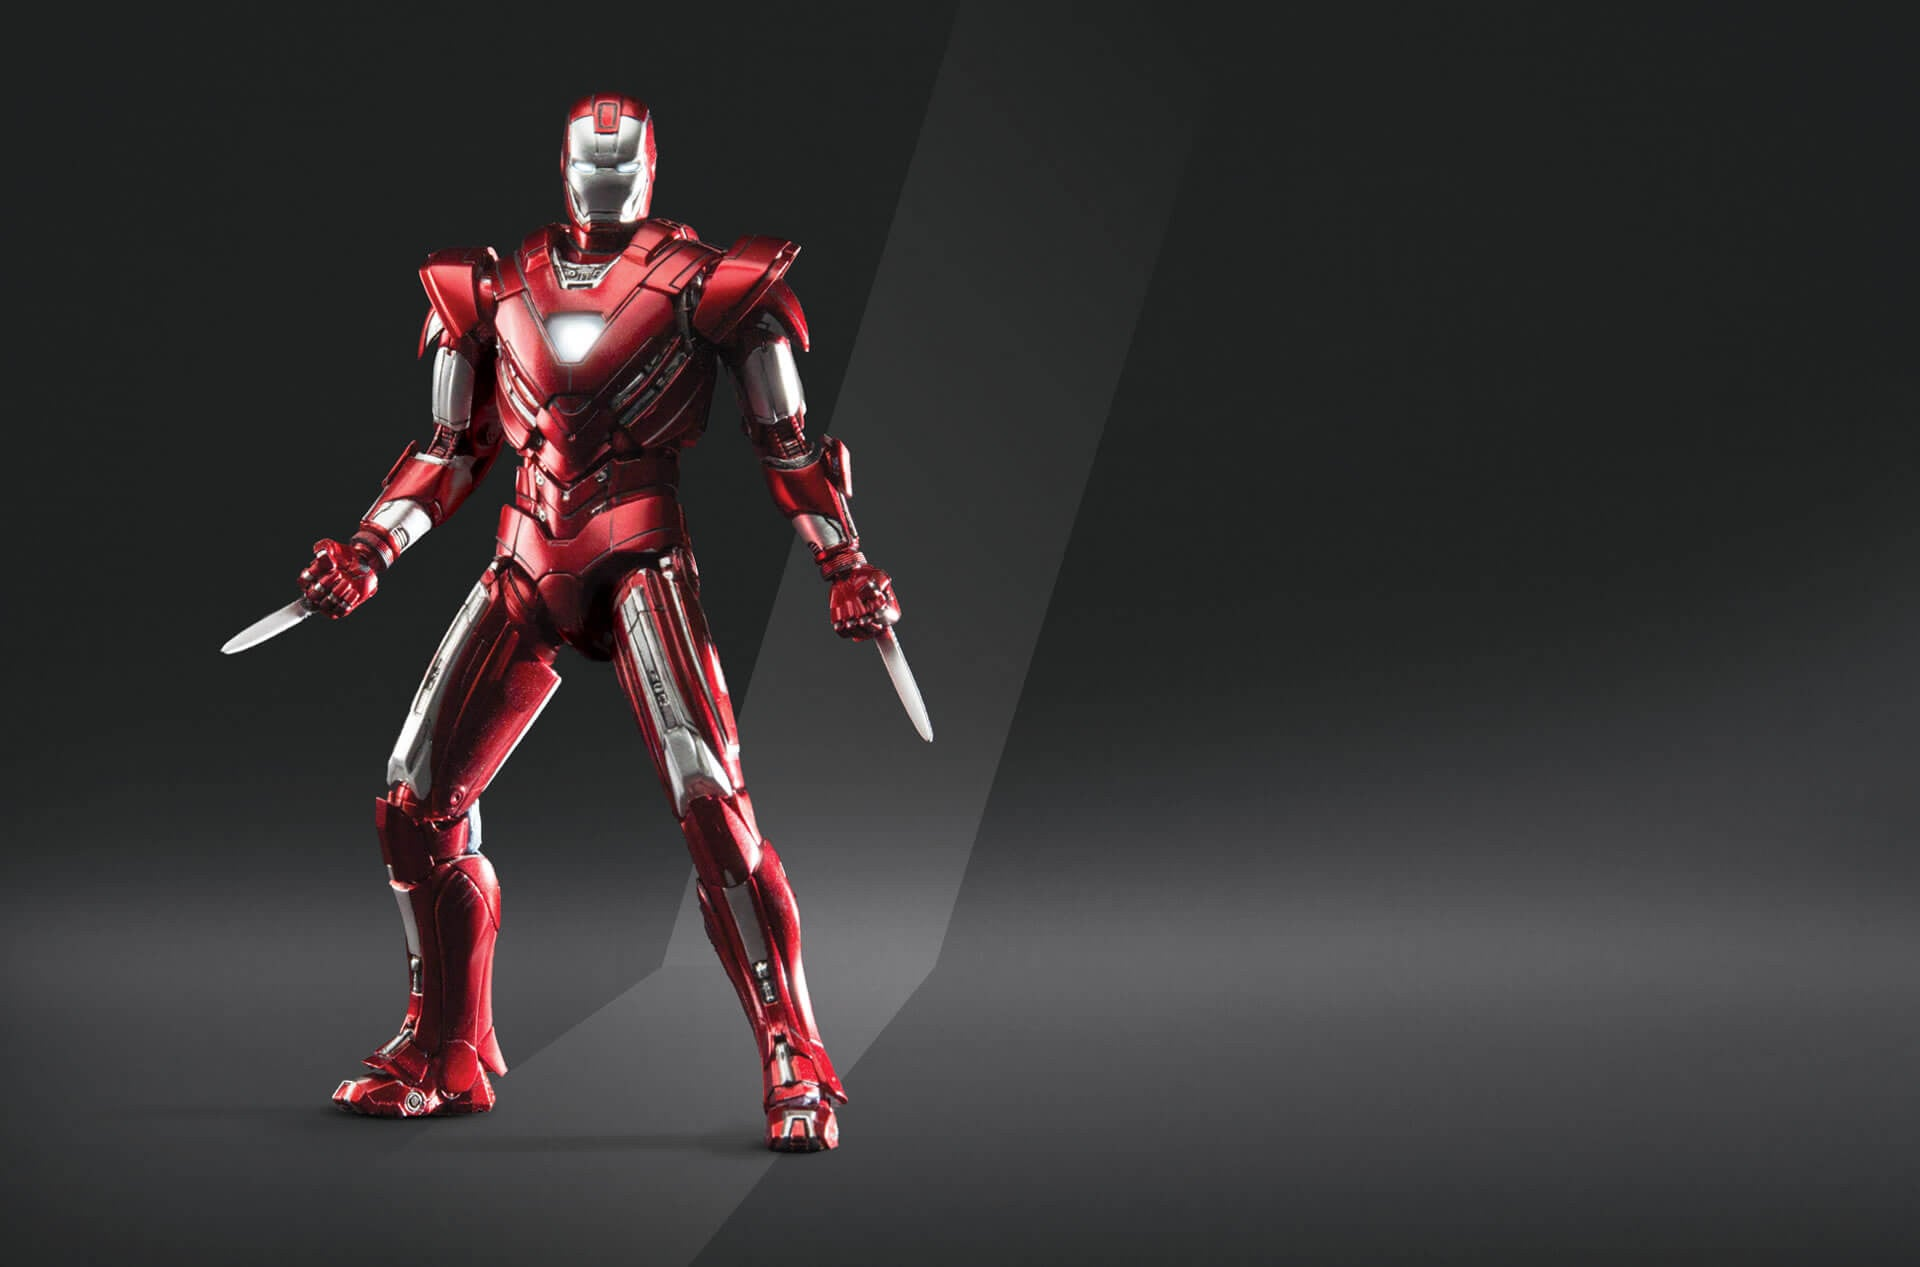 Comicave Studios - Omni Class: 1/12 Scale Iron Man Mark XXXIII Silver Centurion - Marvelous Toys - 3